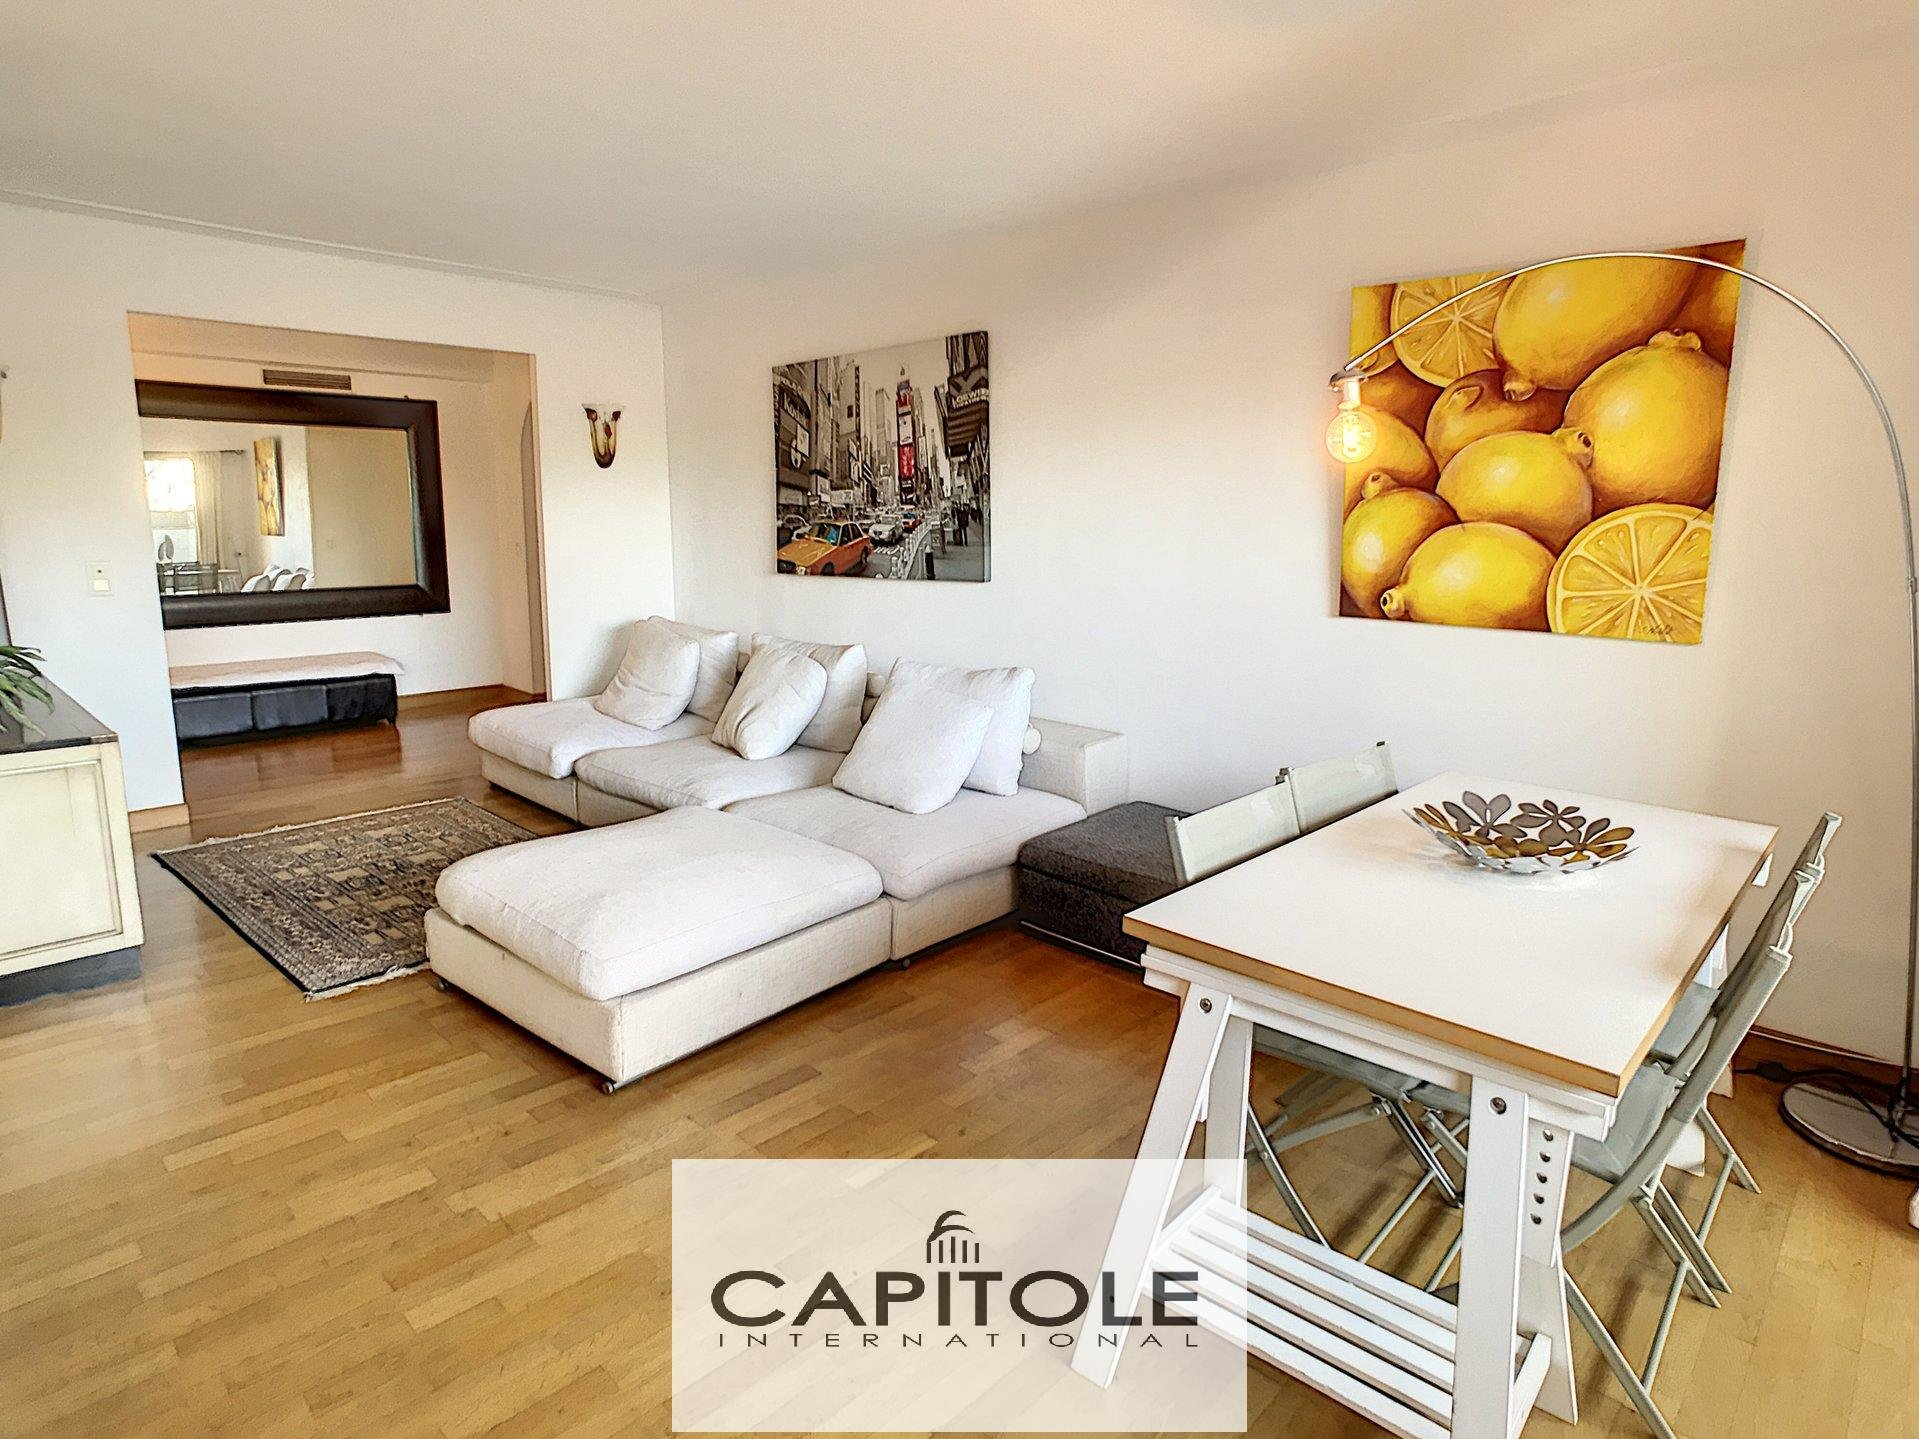 For sale, city center of ANTIBES, 100 m² dual aspect 2 bedroom apartment